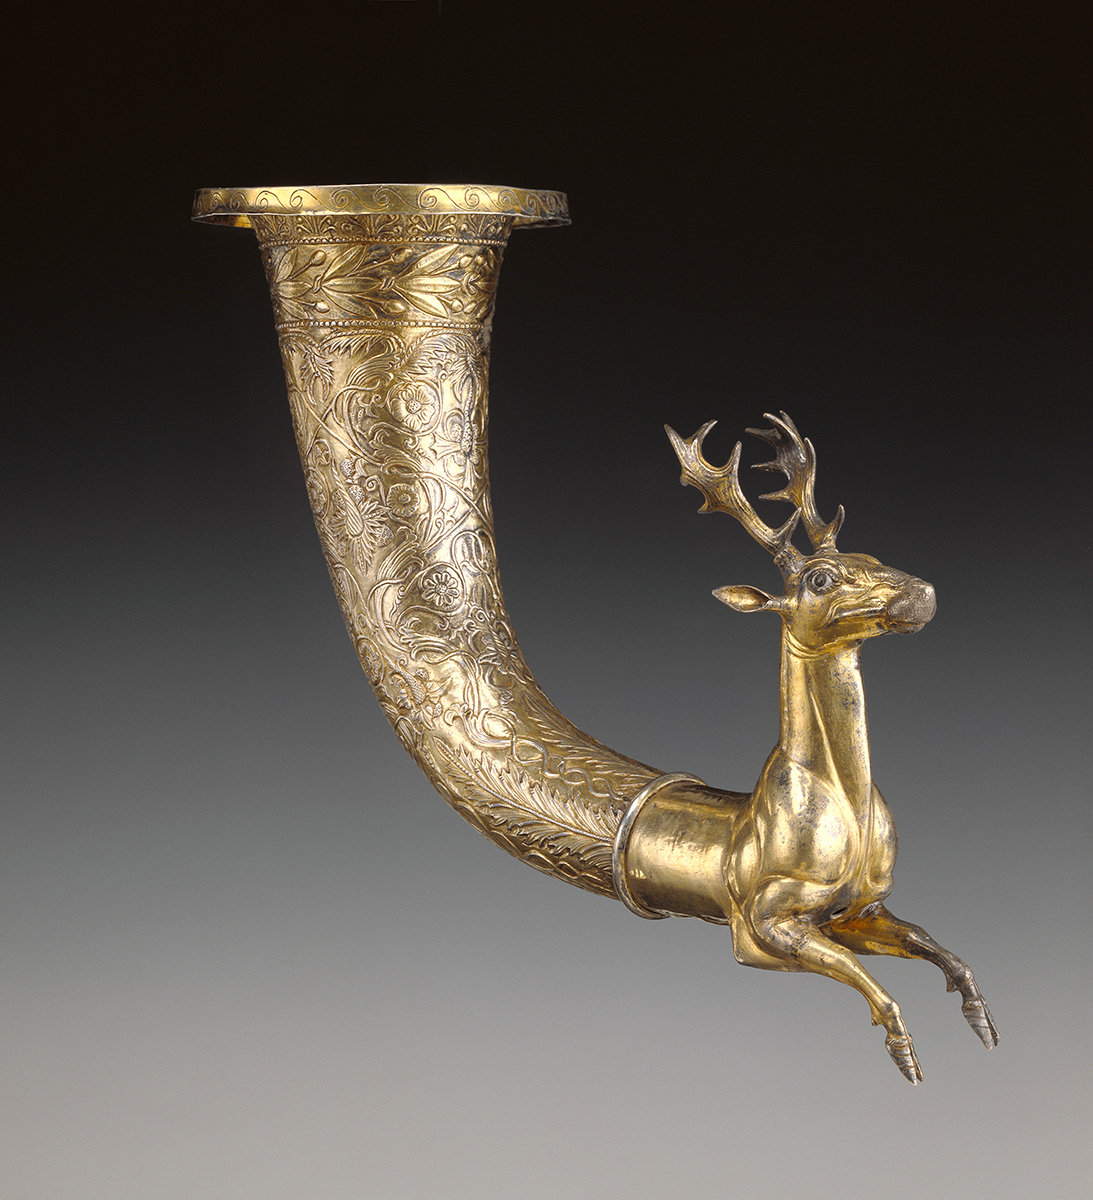 Rhyton with the forepart of a stag, Parthian, 50 BCE–50 CE. Gilt silver, garnet, glass. J. Paul Getty Museum, Los Angeles, 86.AM.753.